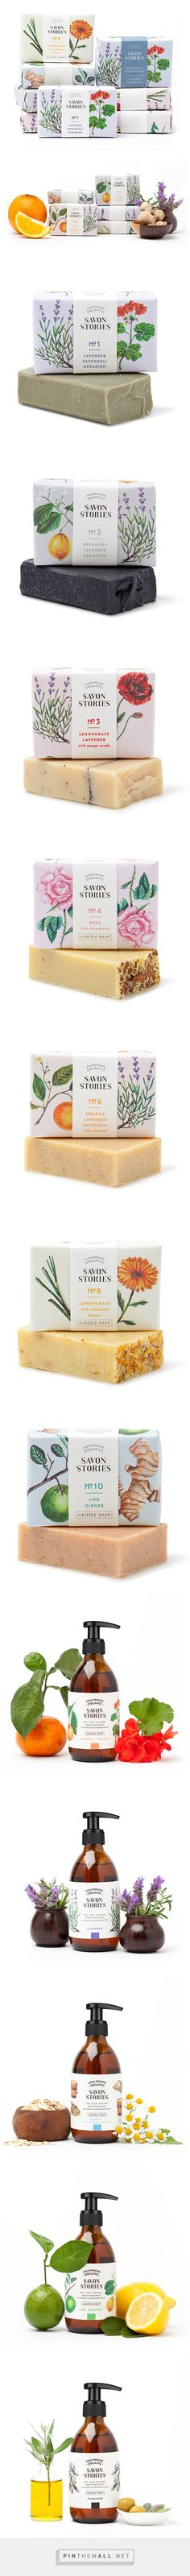 Savon Stories / English company specialised in the handcraft of 100% organic soaps produced in small batches, through a cold-processed method